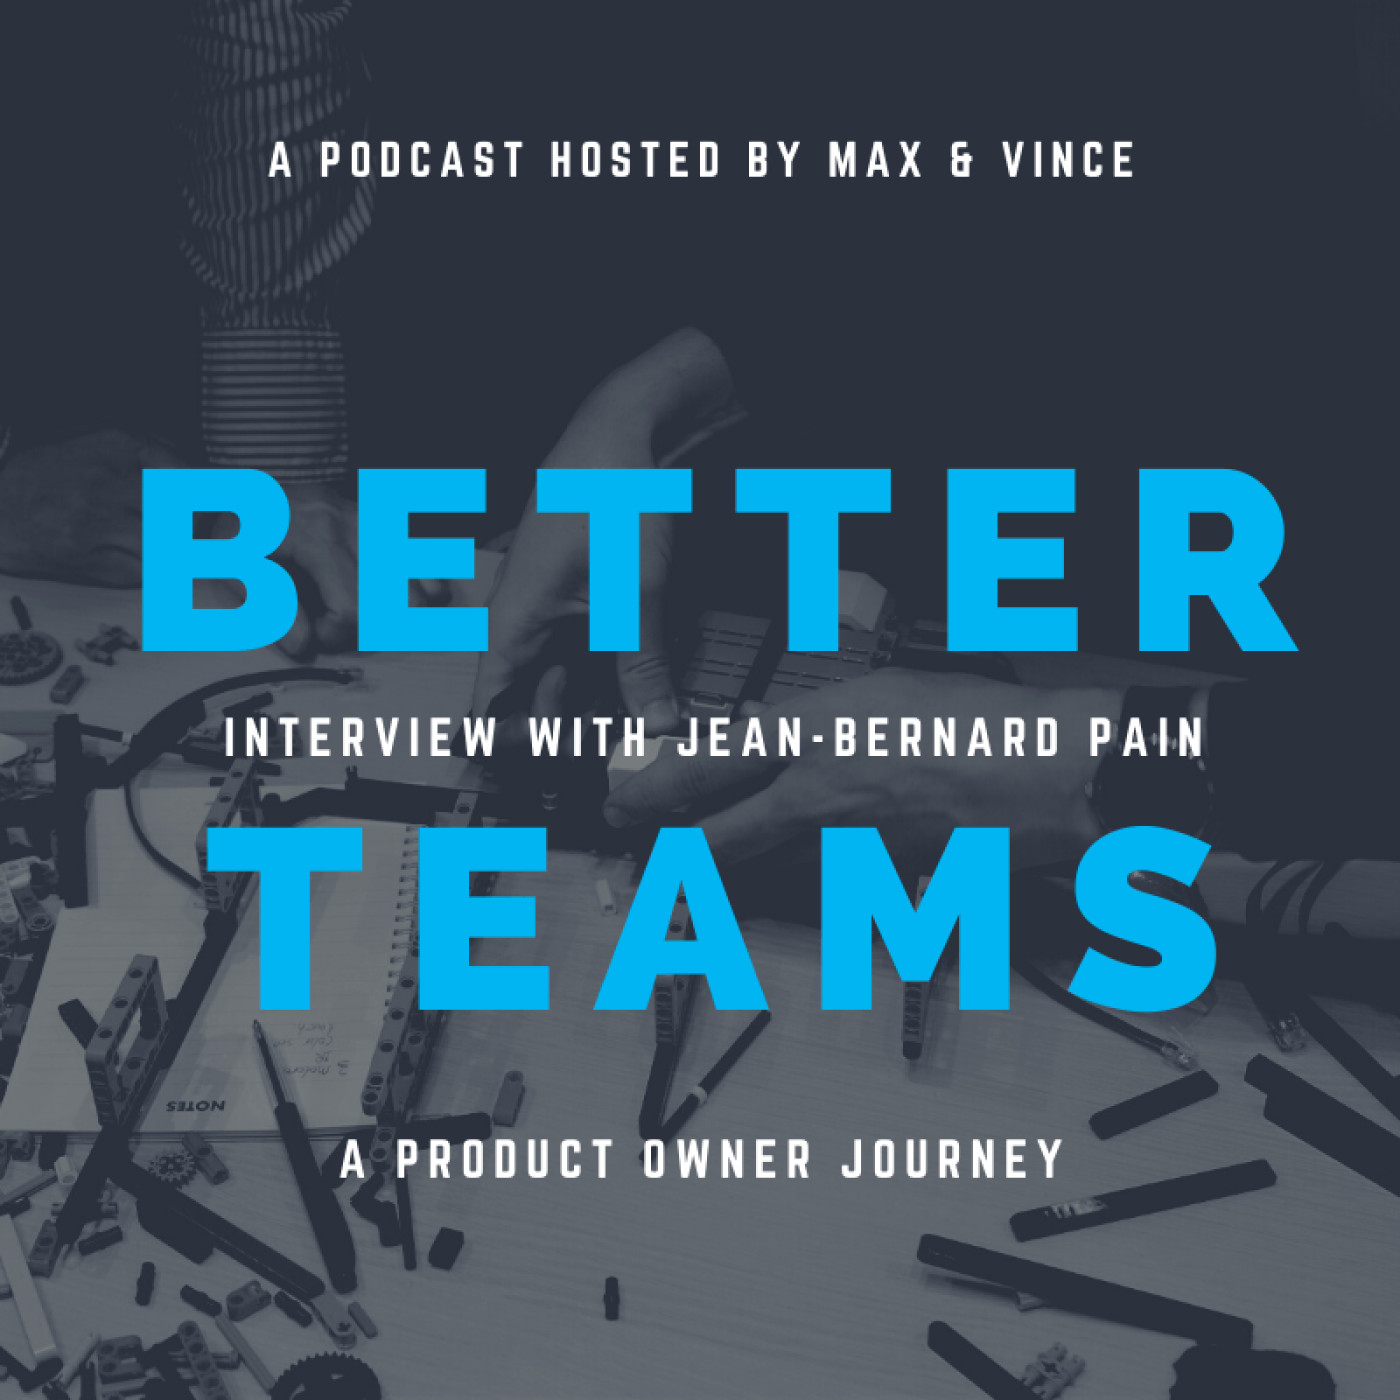 A Product Owner Journey - Interview With Jean-Bernard Pain